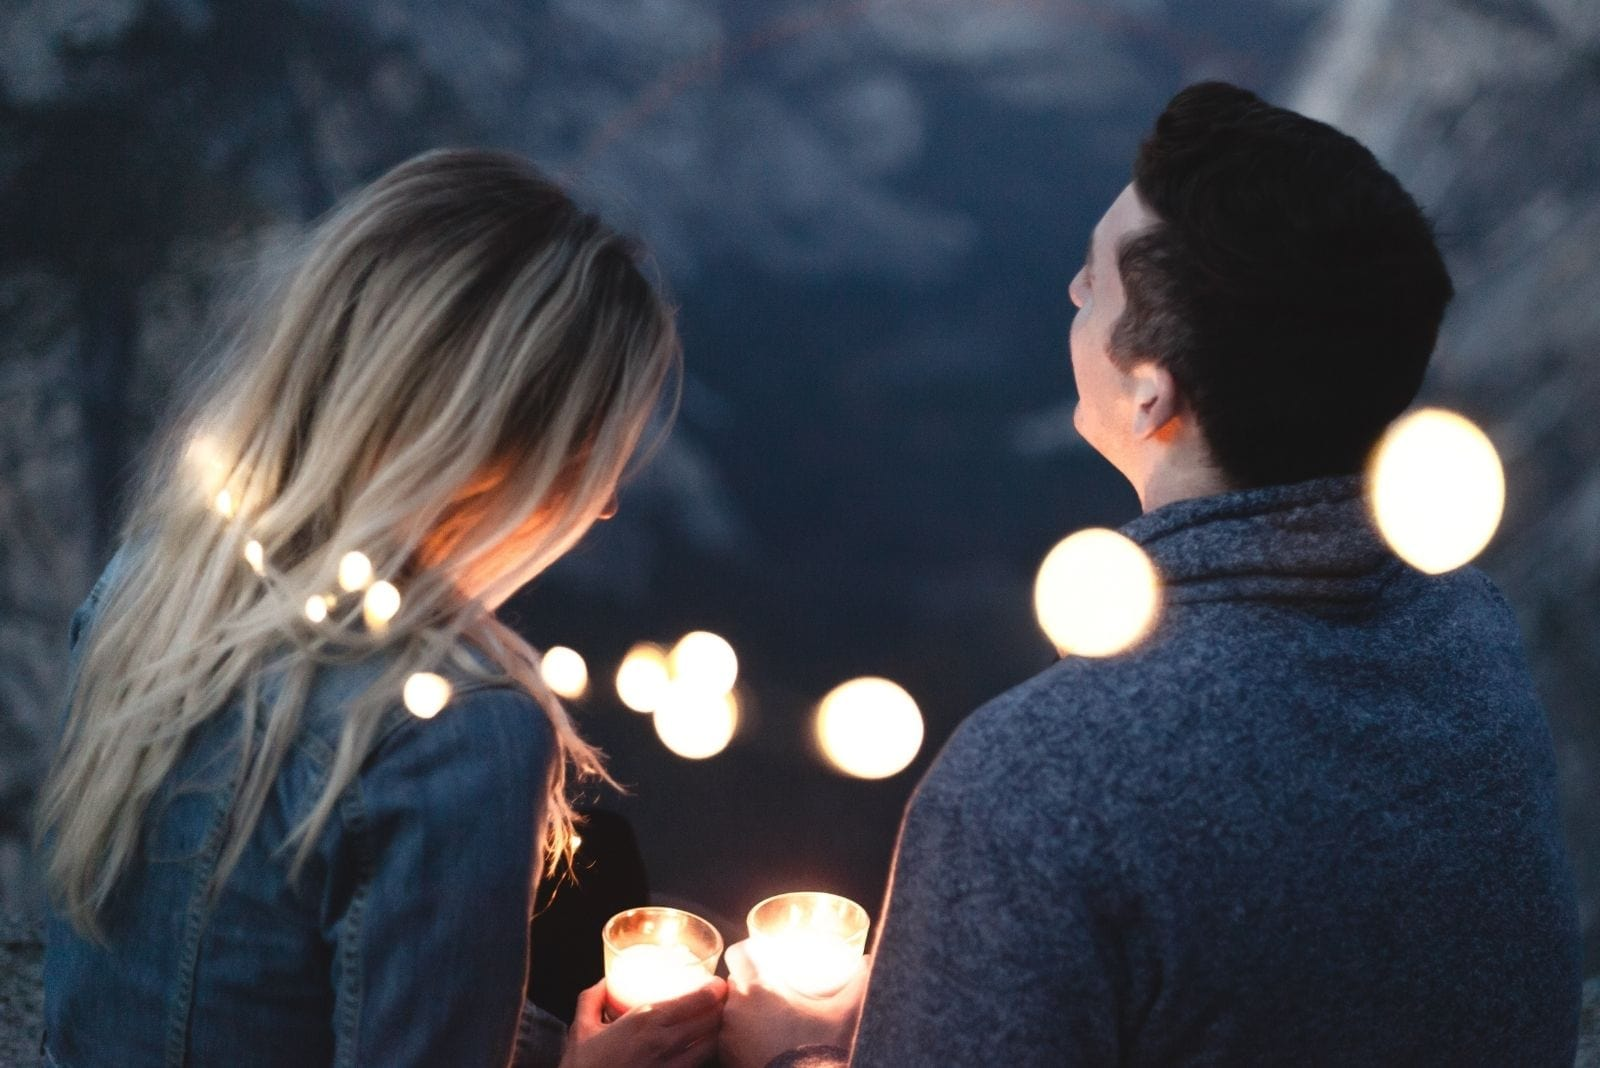 couple in love with lights covering around them holding candles